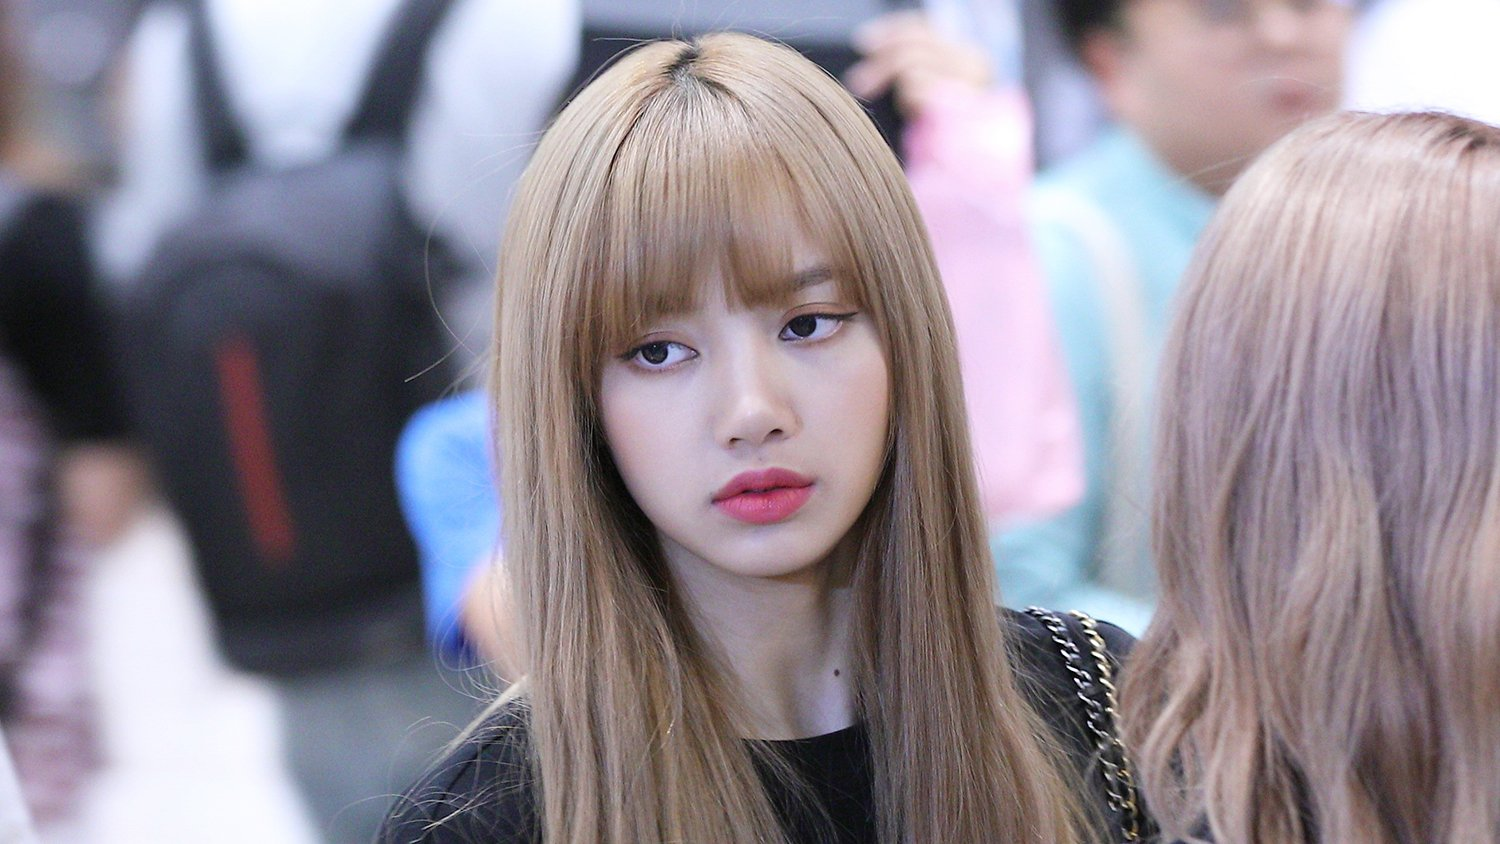 Lisa Blackpink Eyes